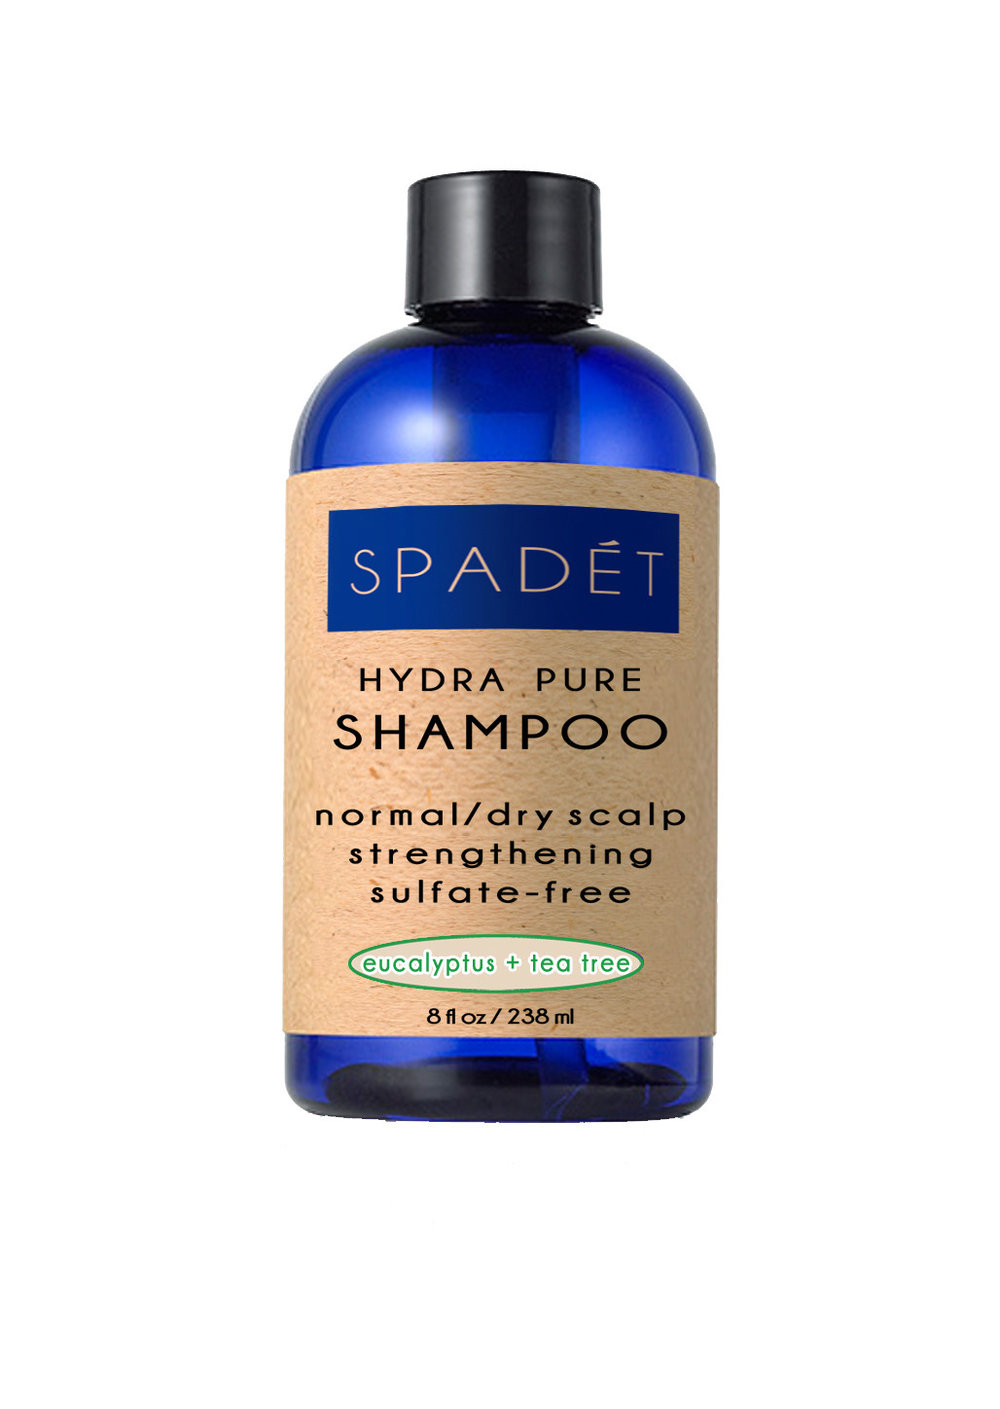 spadet-hydra-pure-shampoo-normal-dry-scalp-eucalyptus-tea-tree.jpg